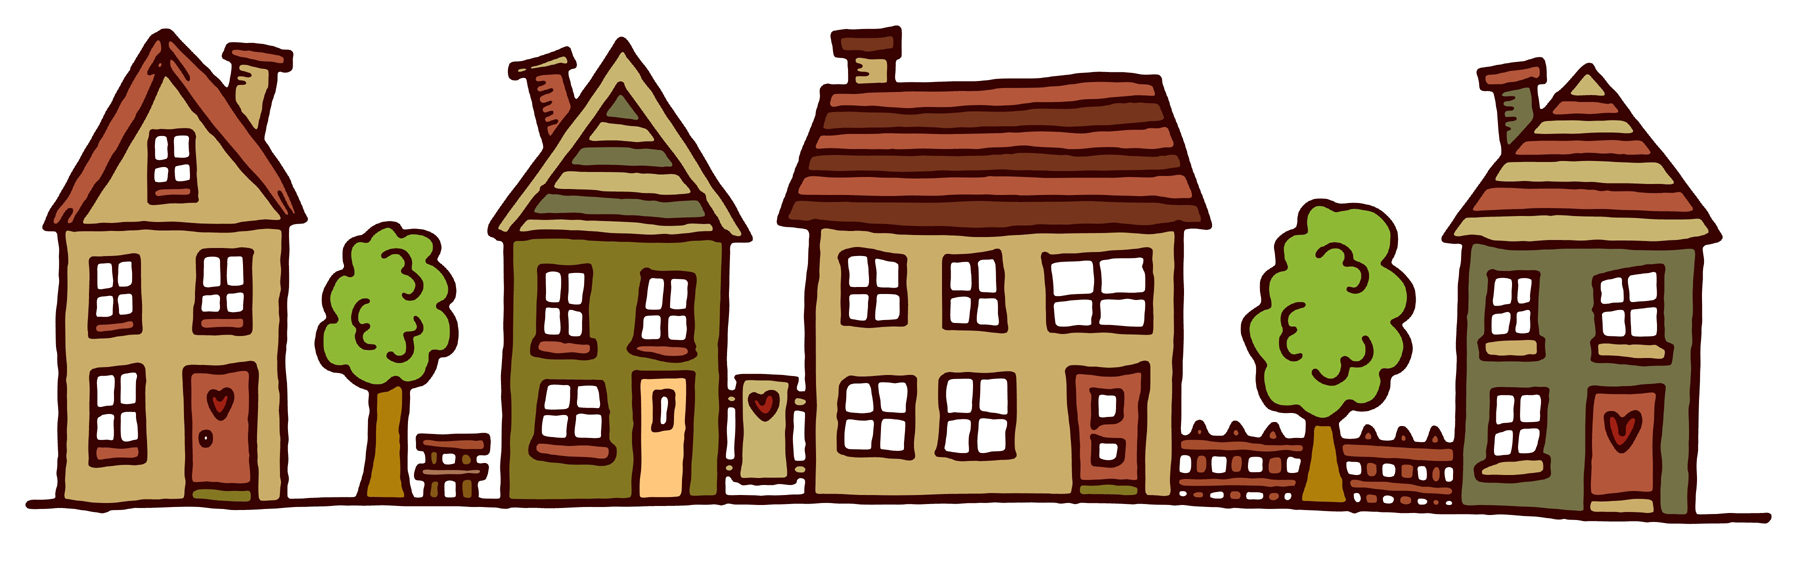 Row house clipart graphic library Row Of Houses Clipart - Clipart Kid graphic library